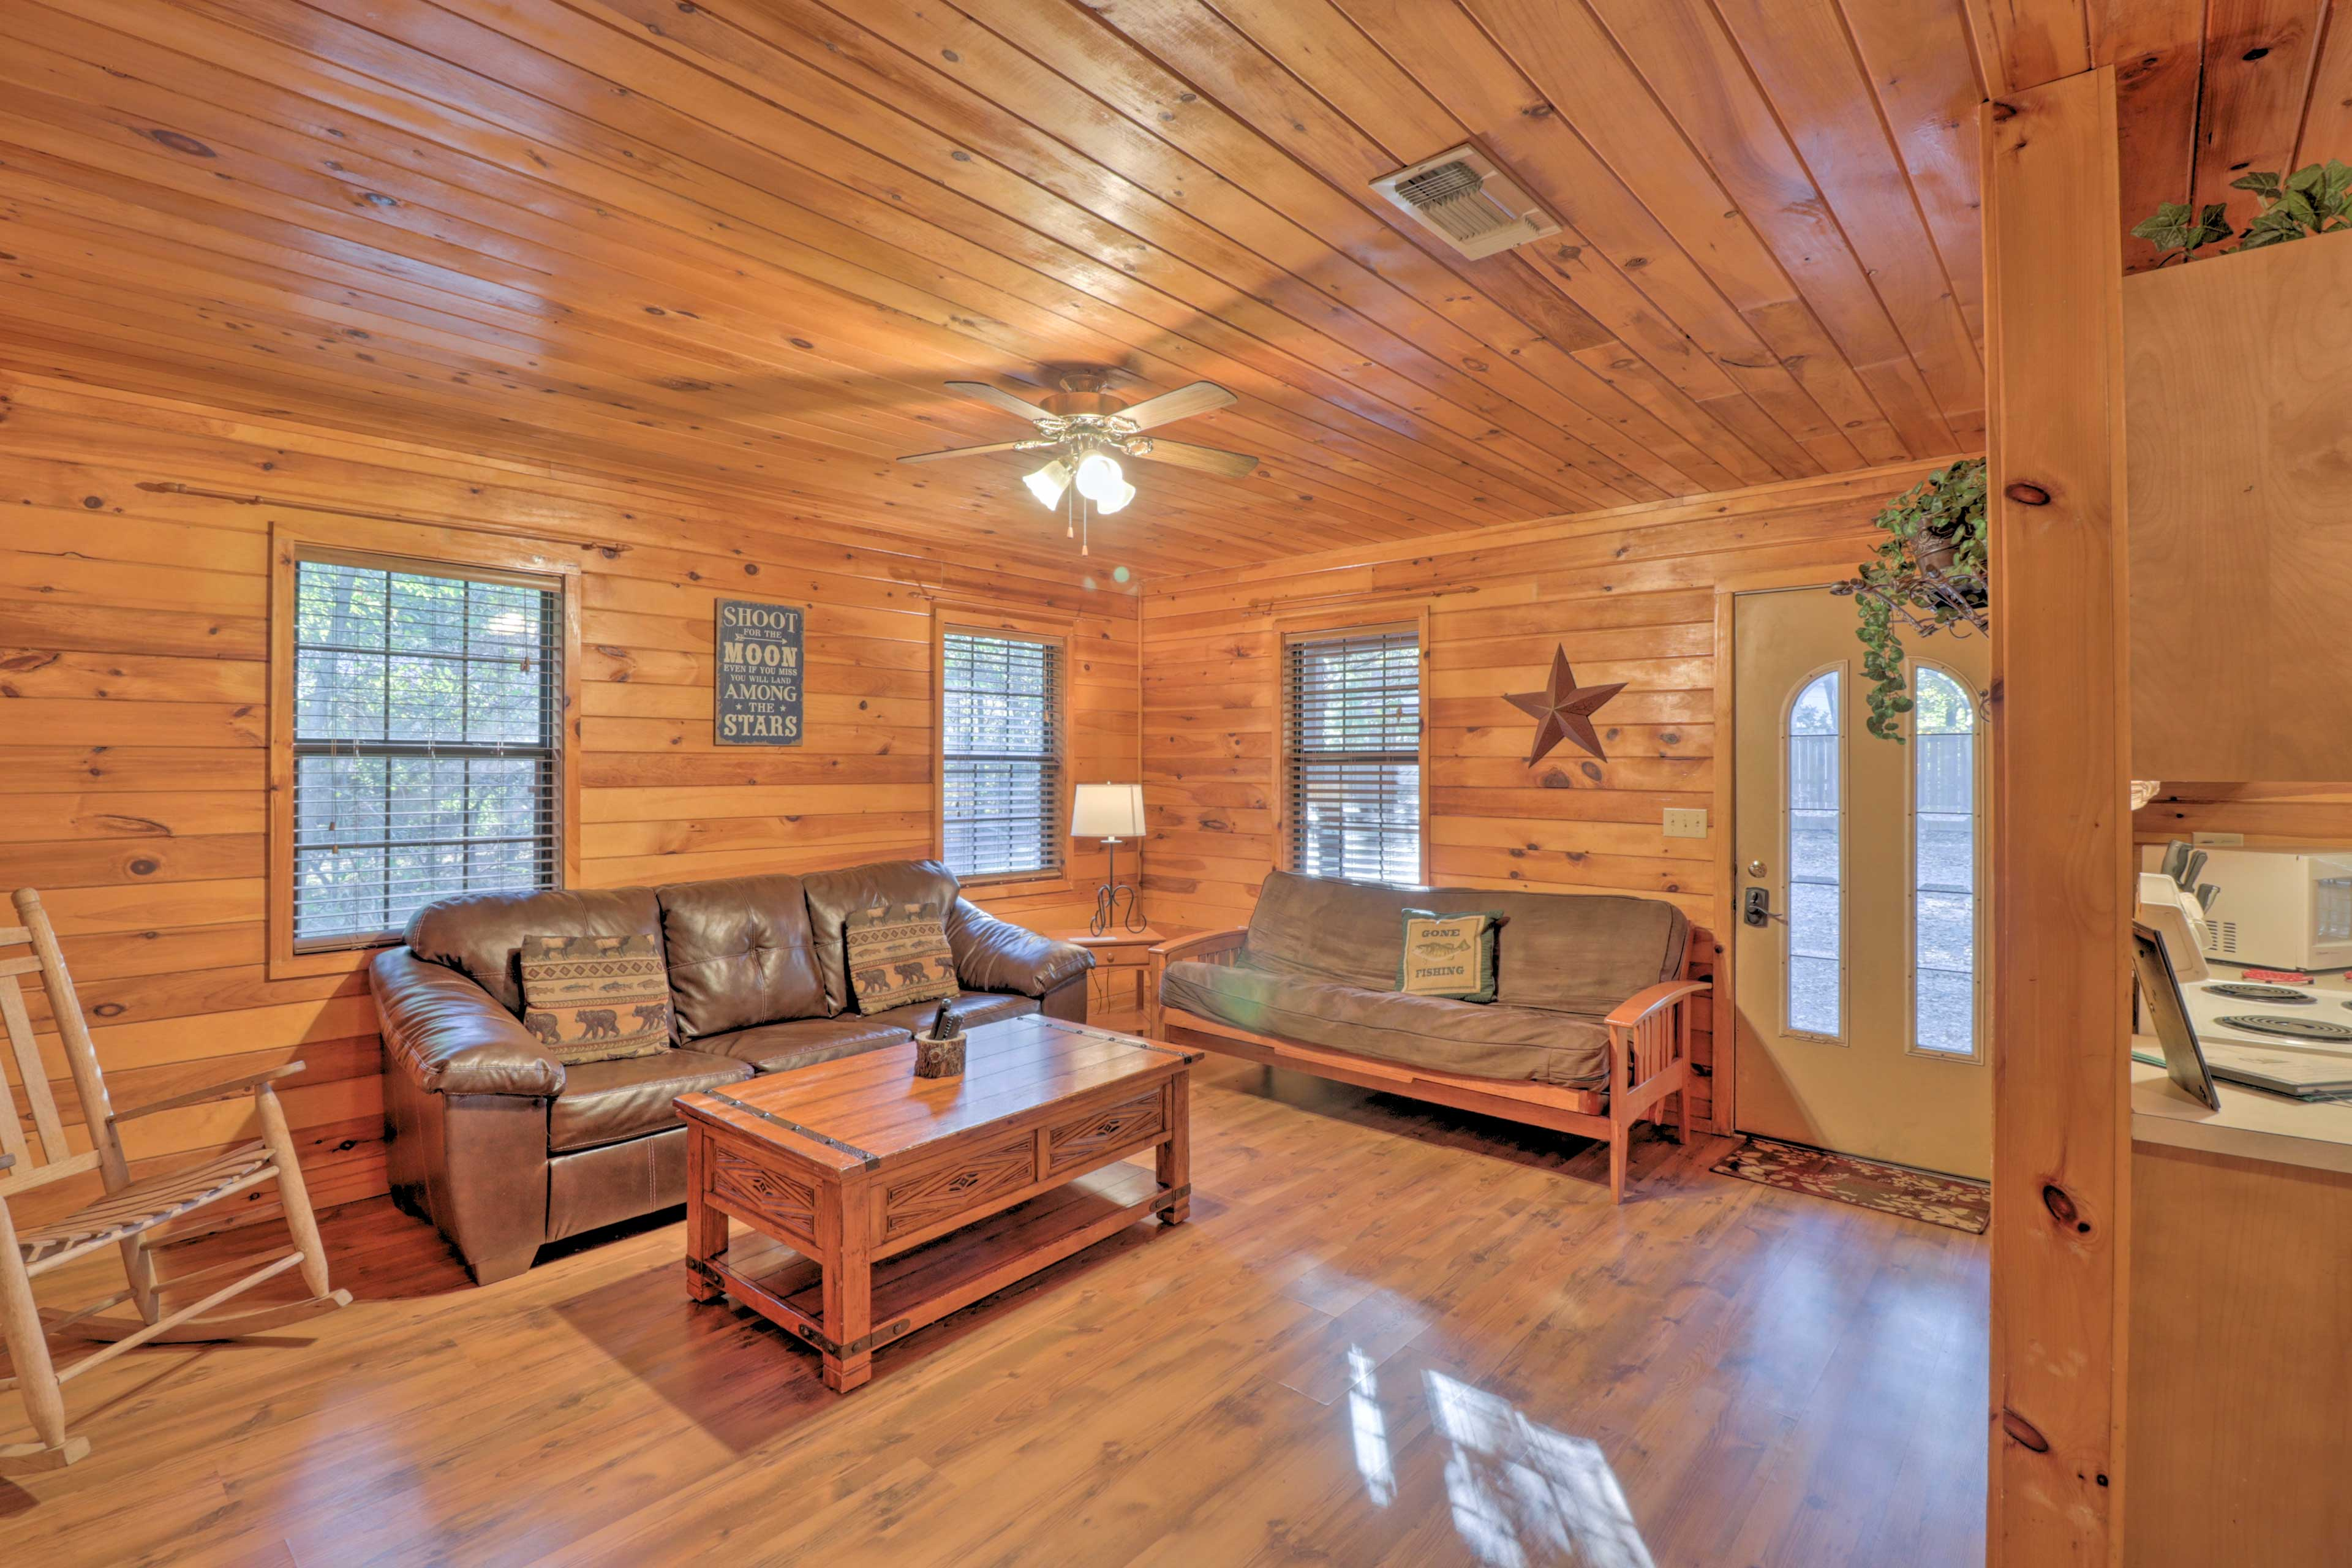 Bring your group of 10 to this inviting cabin in Broken Bow.